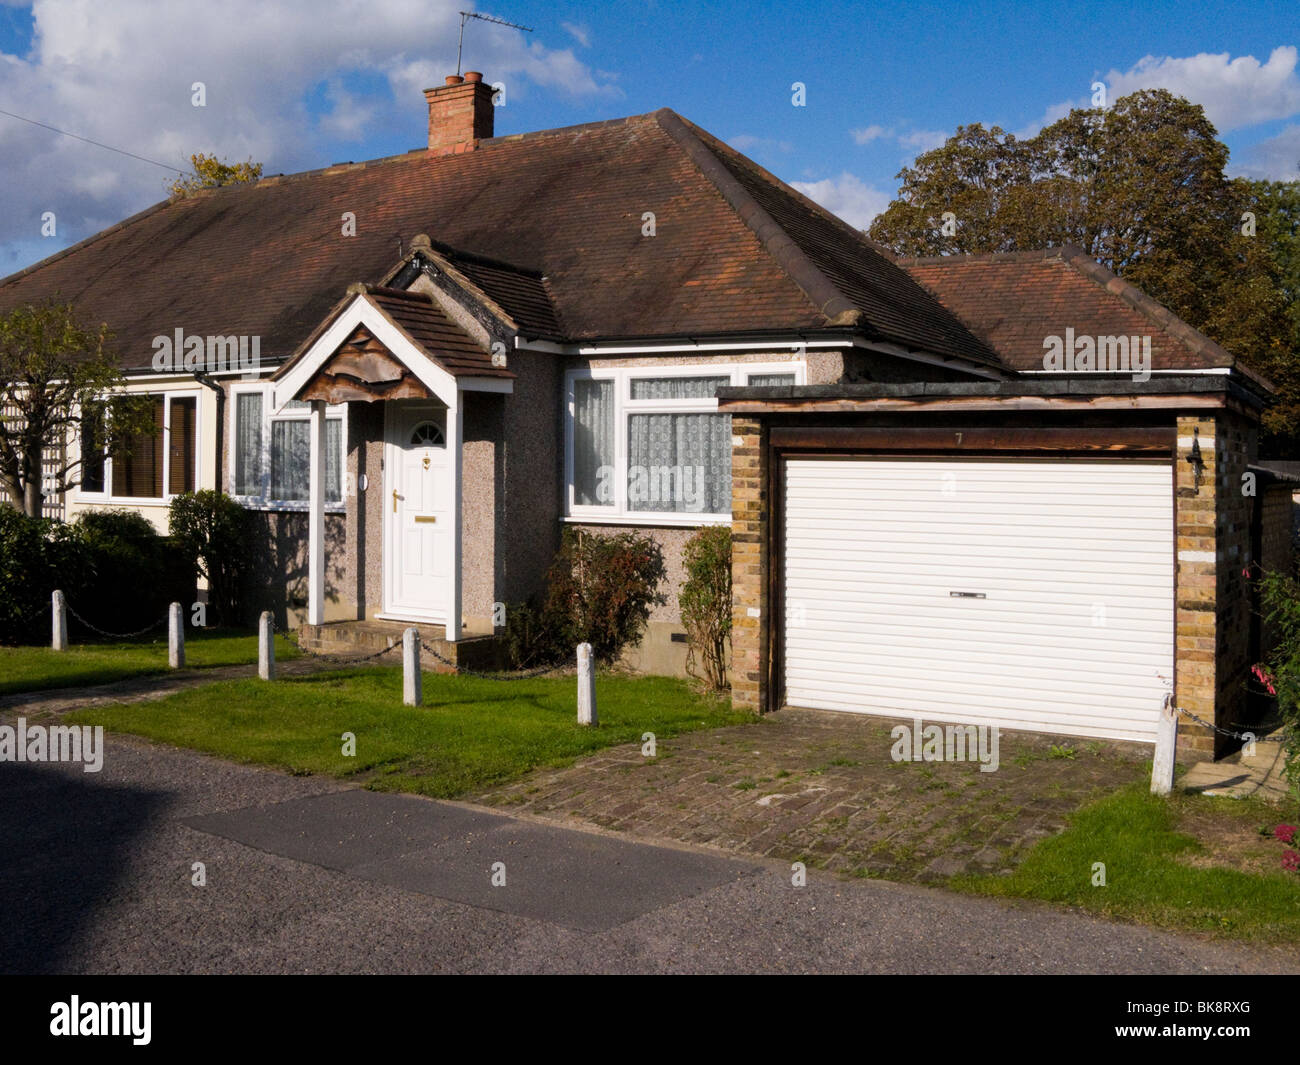 Semi Detached Bungalow Home House With Double Garage In